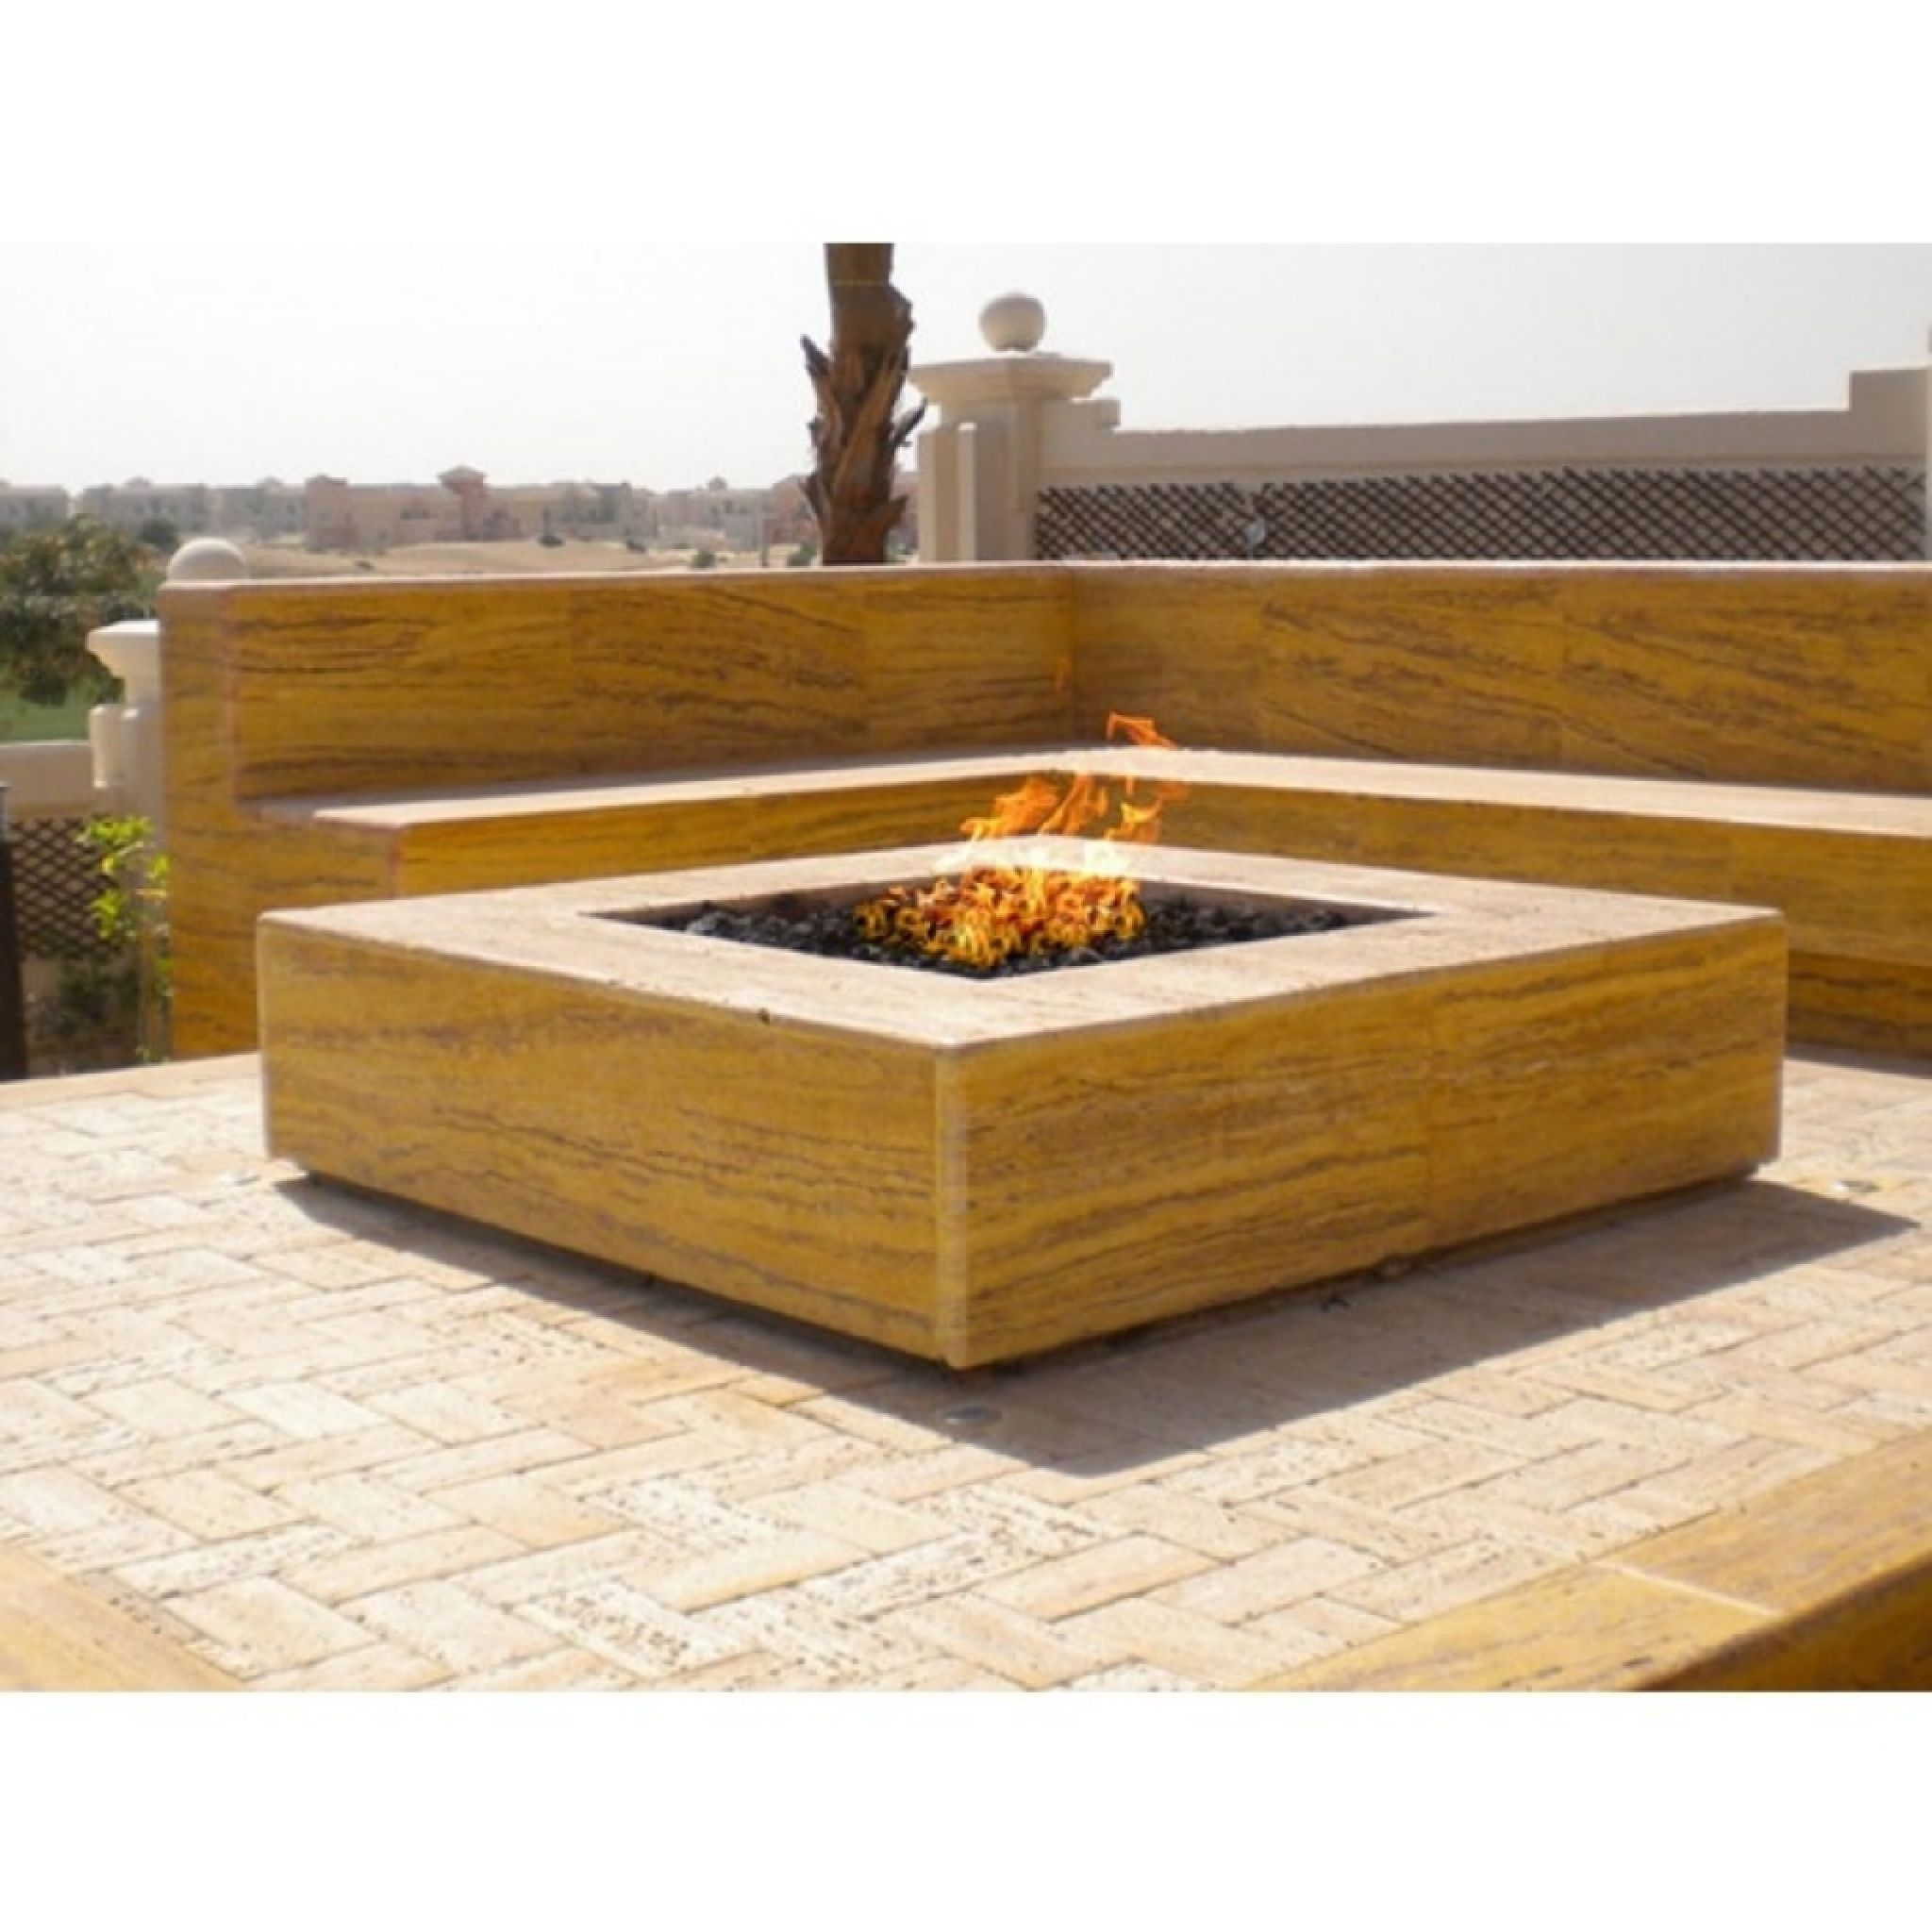 outdoor fireplace burner kits - interior paint color schemes Check more at http://www.mtbasics.com/outdoor-fireplace-burner-kits-interior-paint-color-schemes/